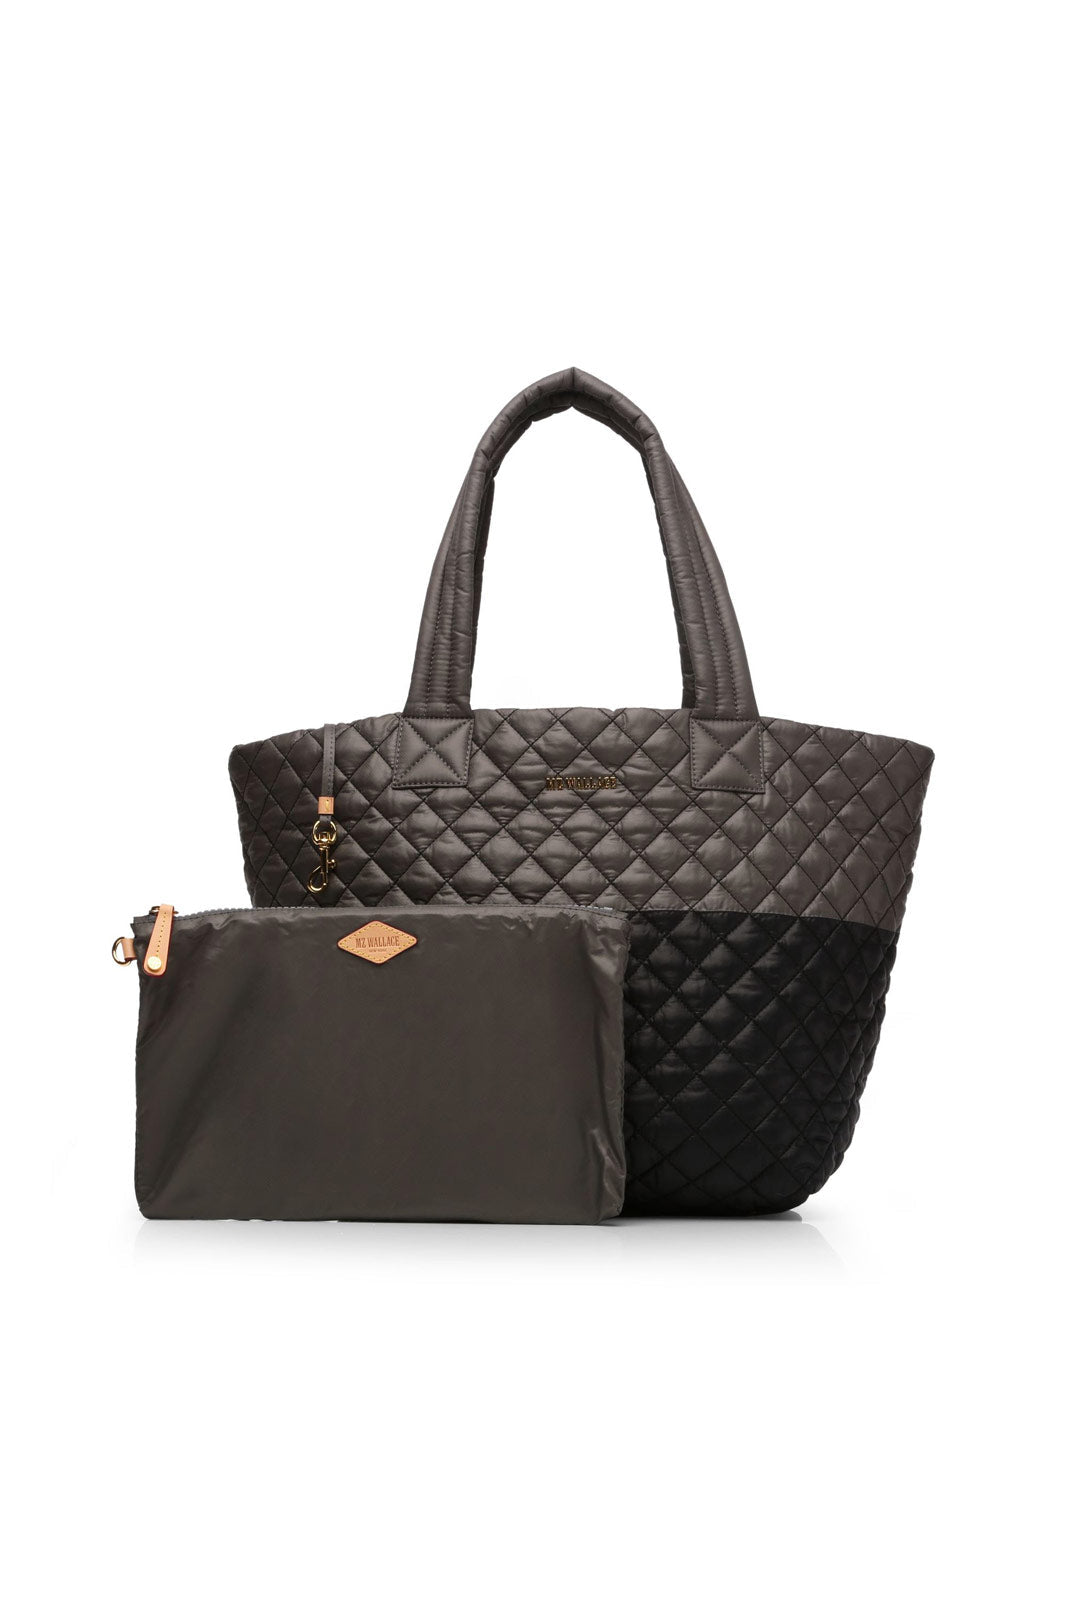 MZ Wallace Metro Tote Medium-Black/Magnet image 4 - The Sports Edit